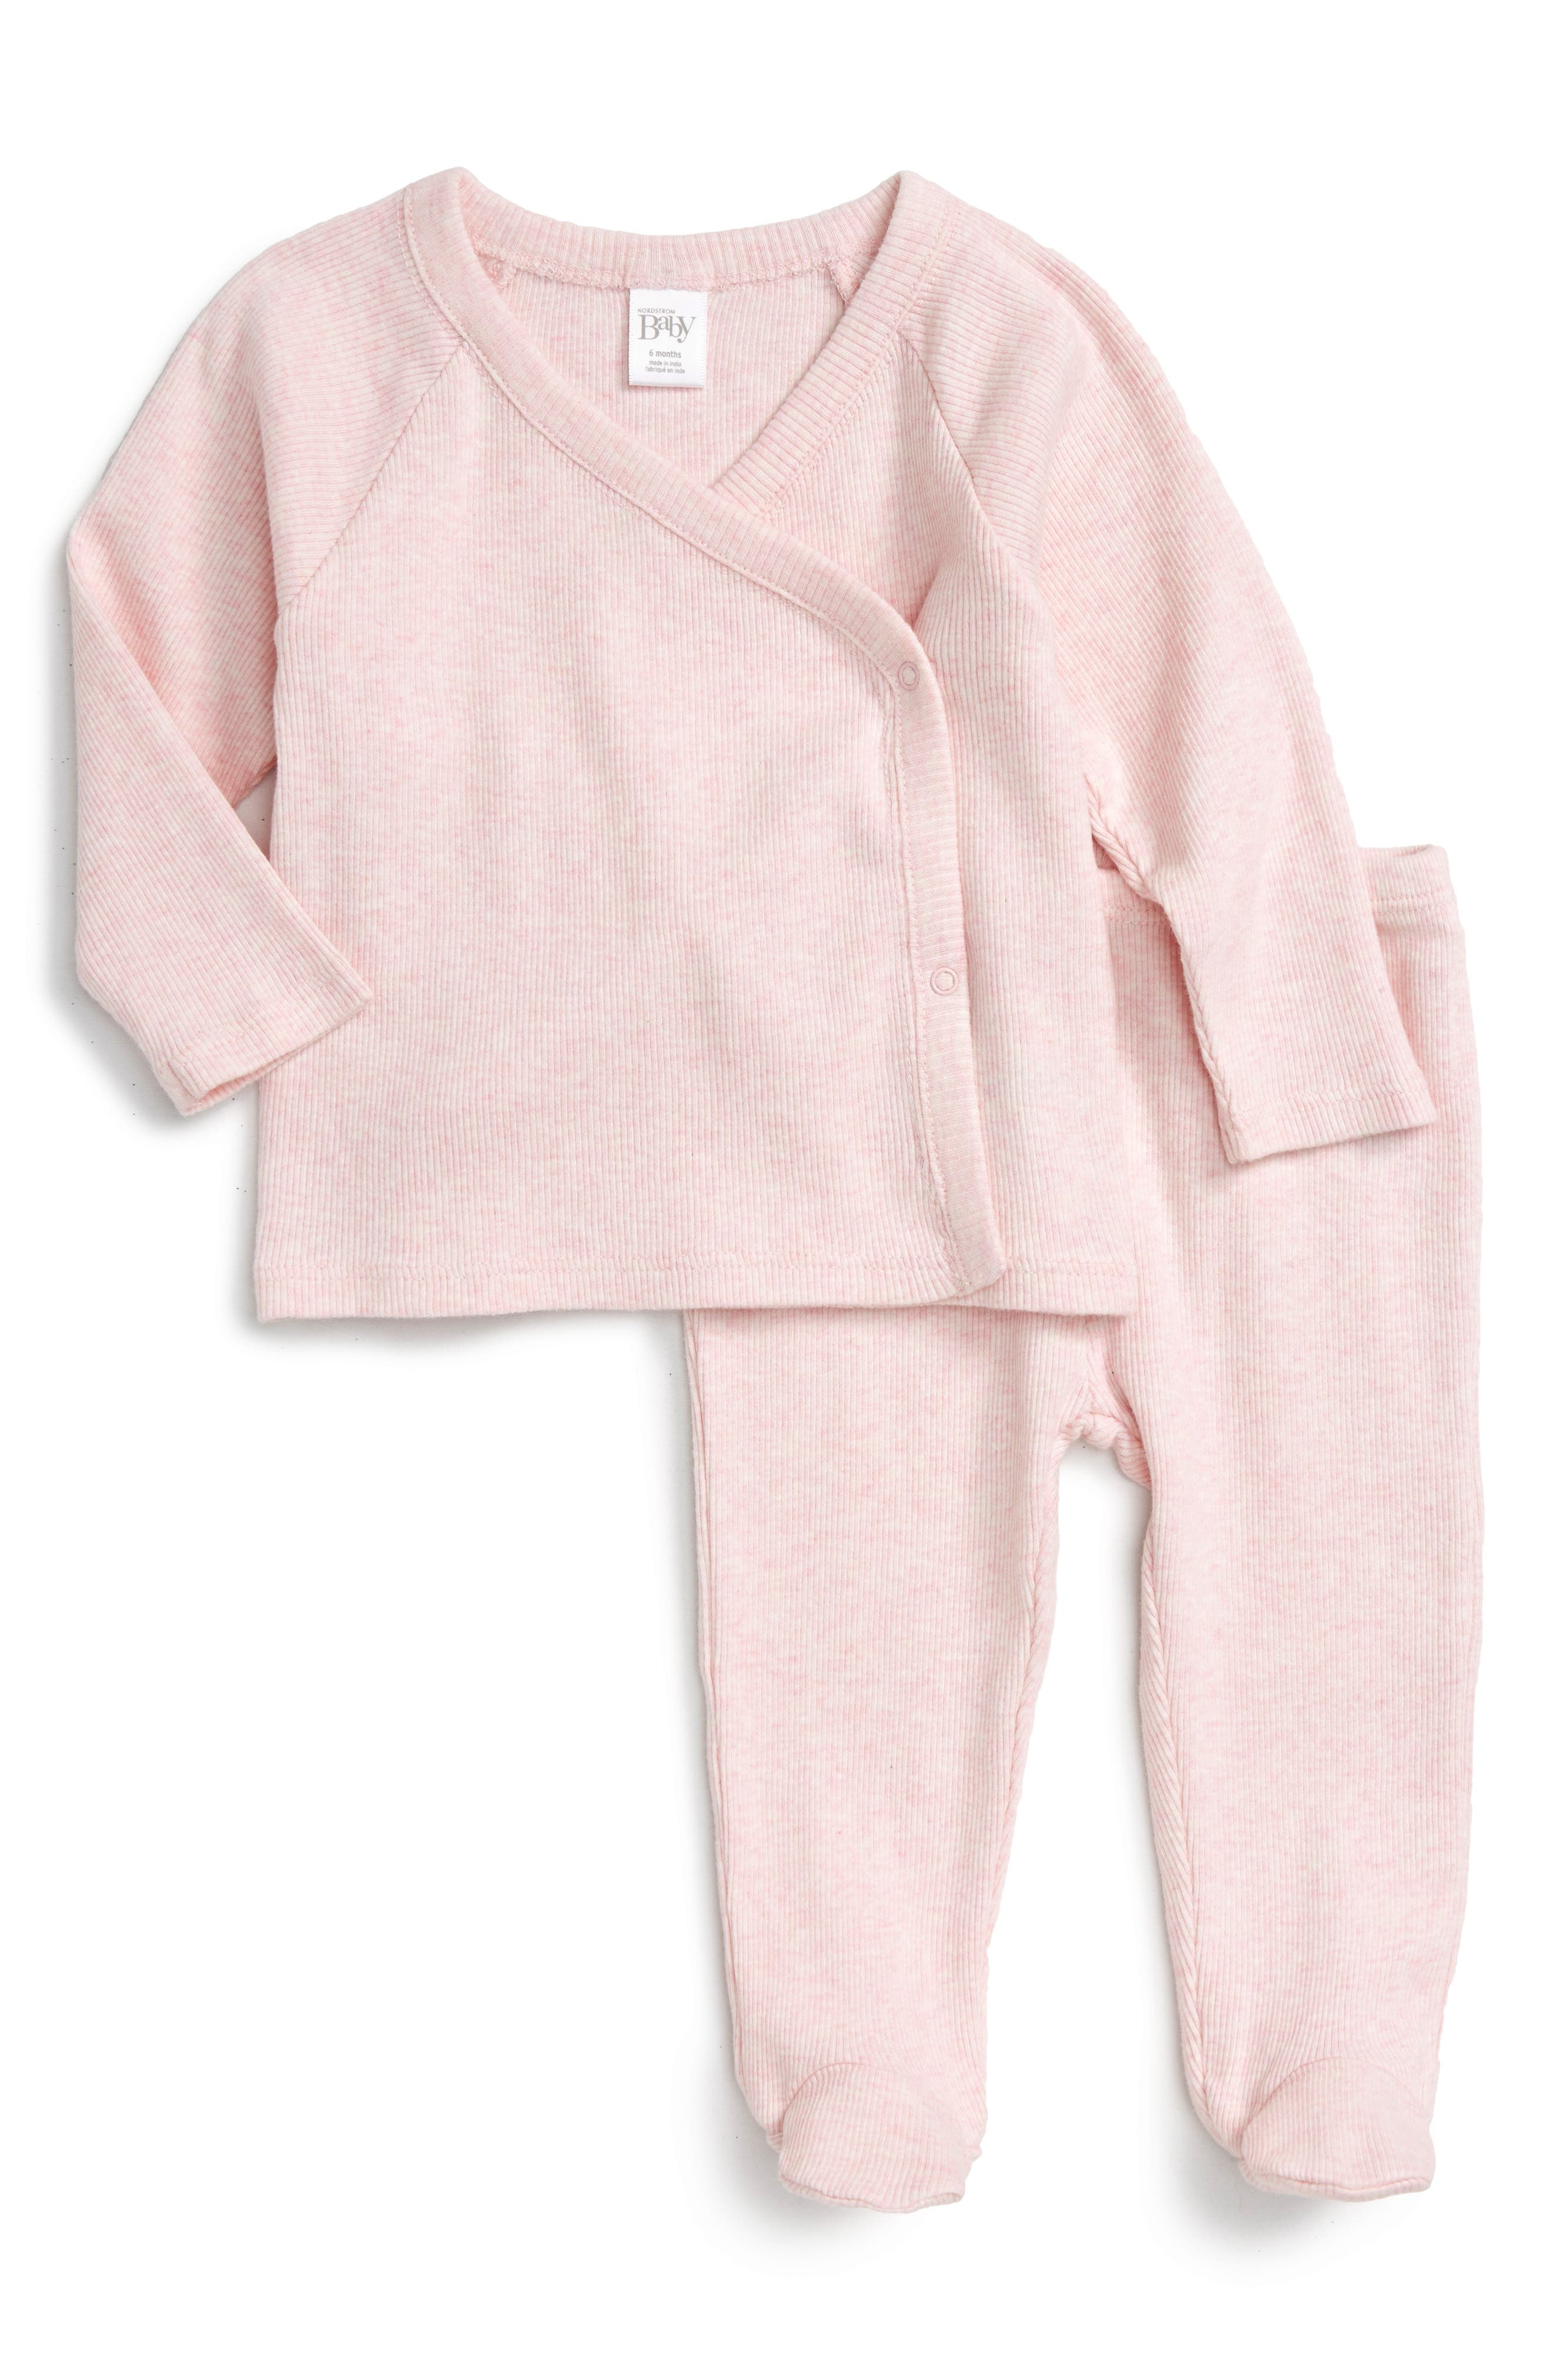 NORDSTROM BABY Wrap Top & Footed Pants Set, Main, color, PINK BABY HEATHER